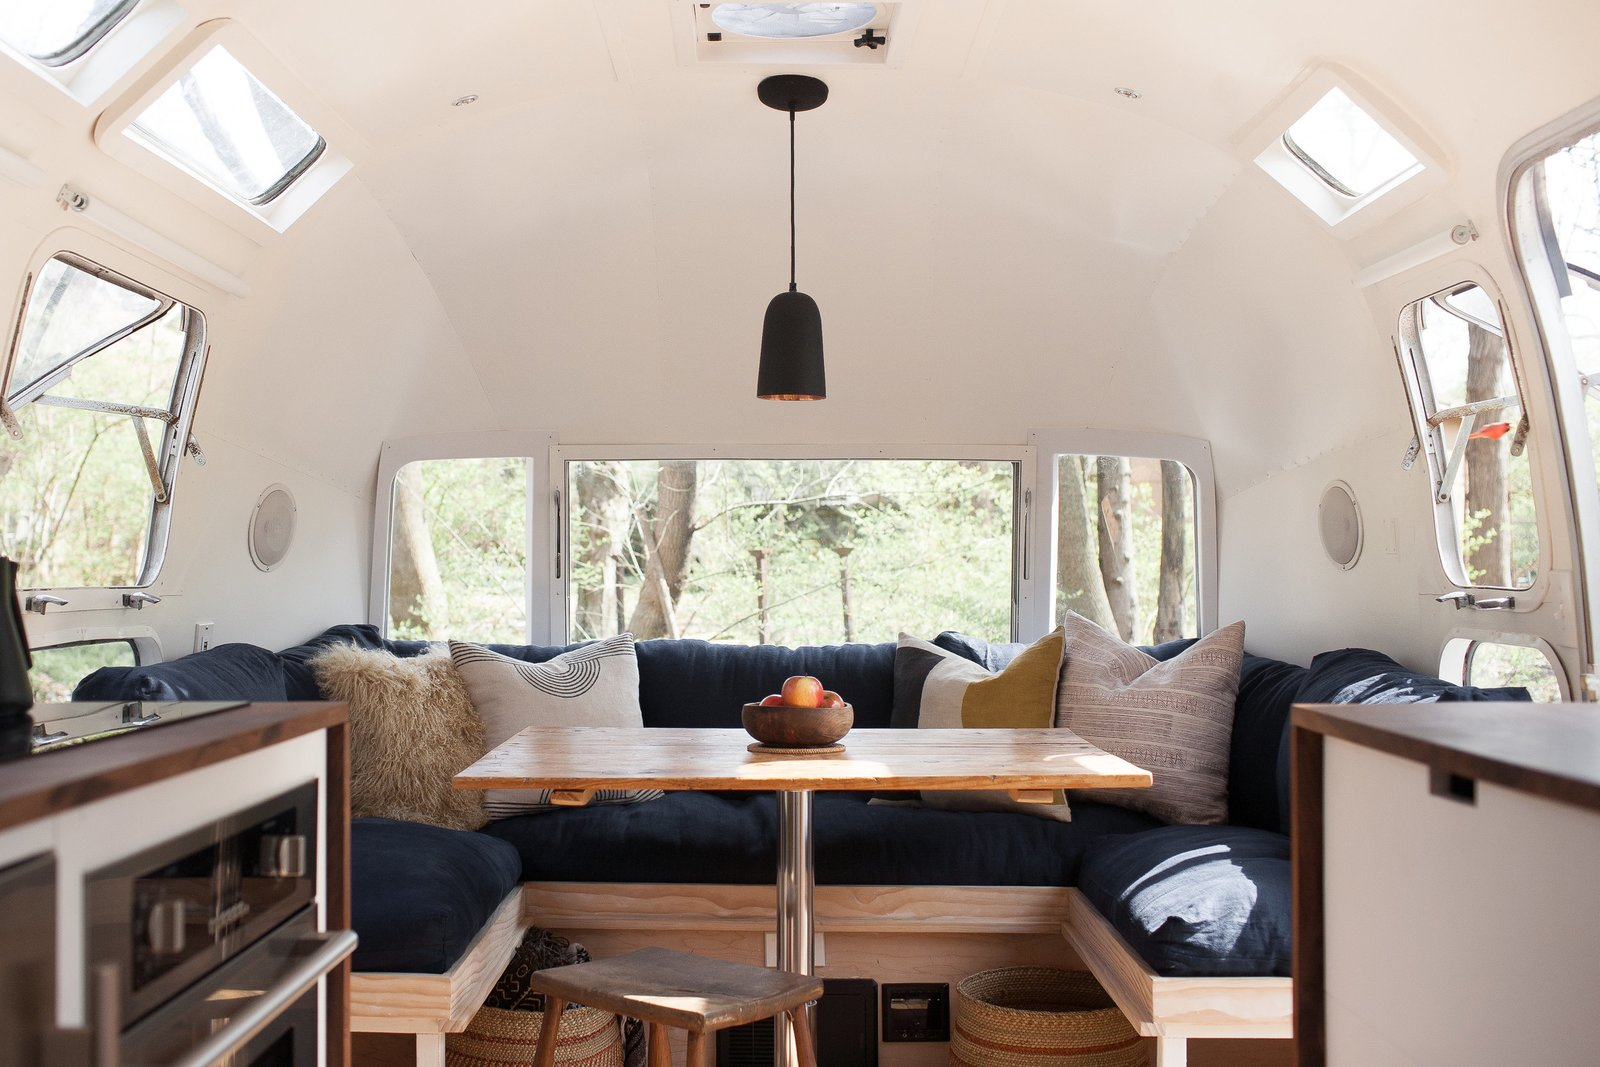 Dining Room, Bench, Pendant Lighting, Table, and Stools Ellen Prasse, an art teacher, and her partner, artist and writer Kate Oliver, transformed their lives and this 1977 Airstream over the course of a year, bringing the trailer back to life and giving it a classic but modern redo. Small touches, like a matte black faucet and light fixture paired with stainless steel appliances, along with a mixing of dark and light wood finishes prevent the space from feeling too matchy-matchy and overwhelming.  Photo 2 of 8 in These 7 Vintage Airstreams Were Transformed Into Modern Escapes